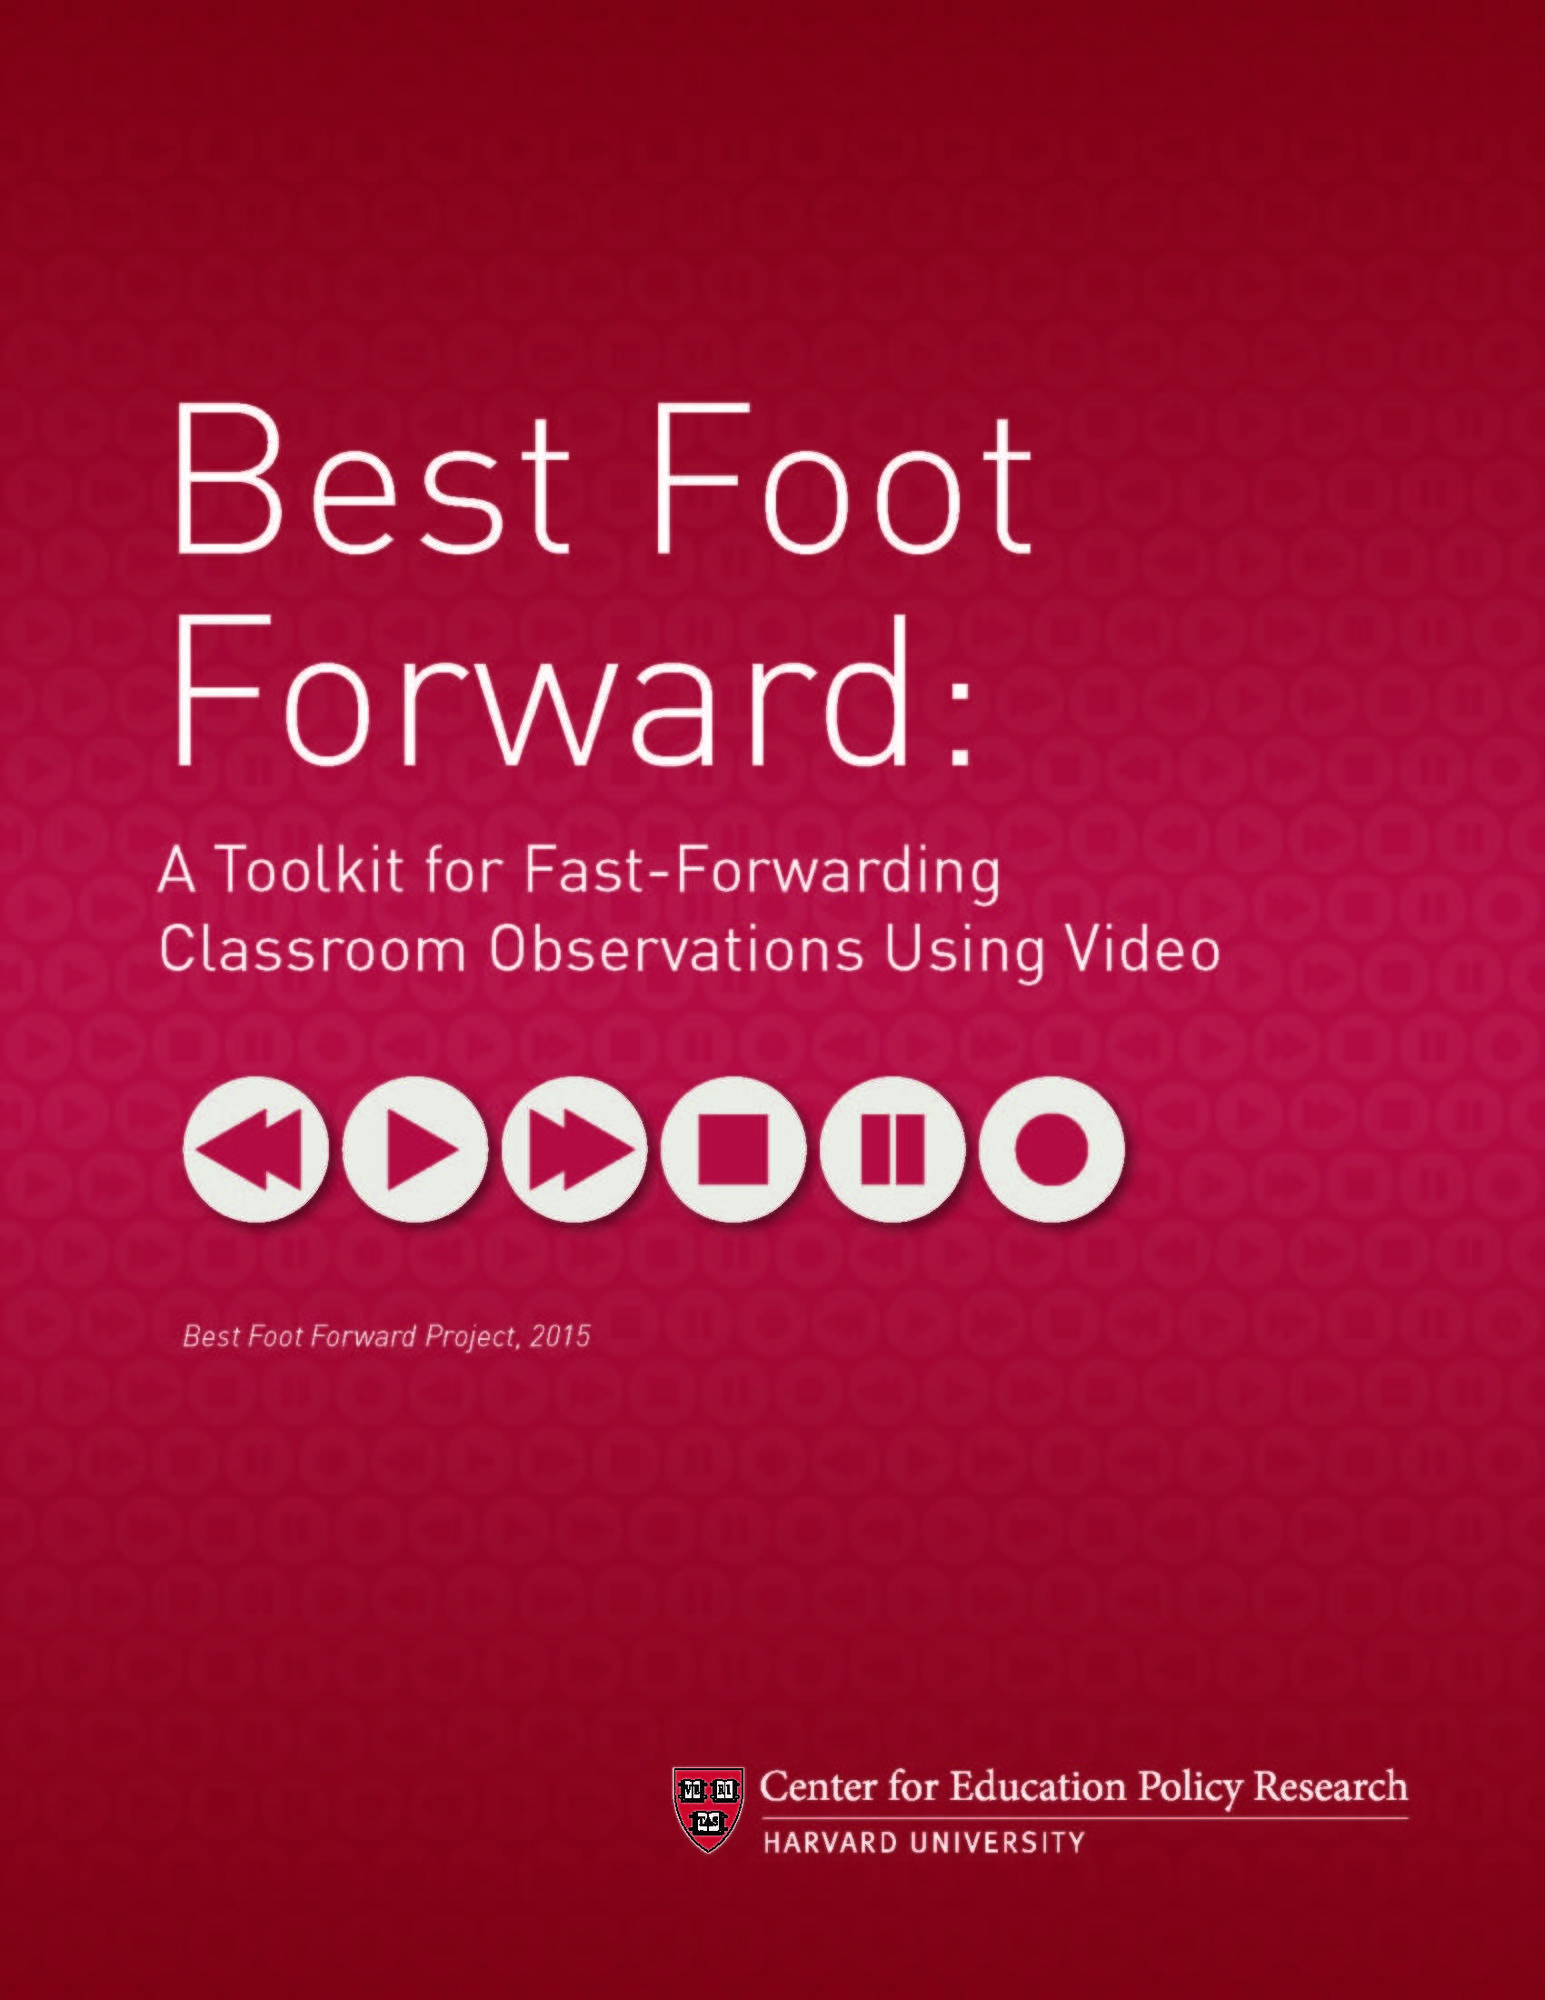 Best Foot Forward: Video Observation Toolkit